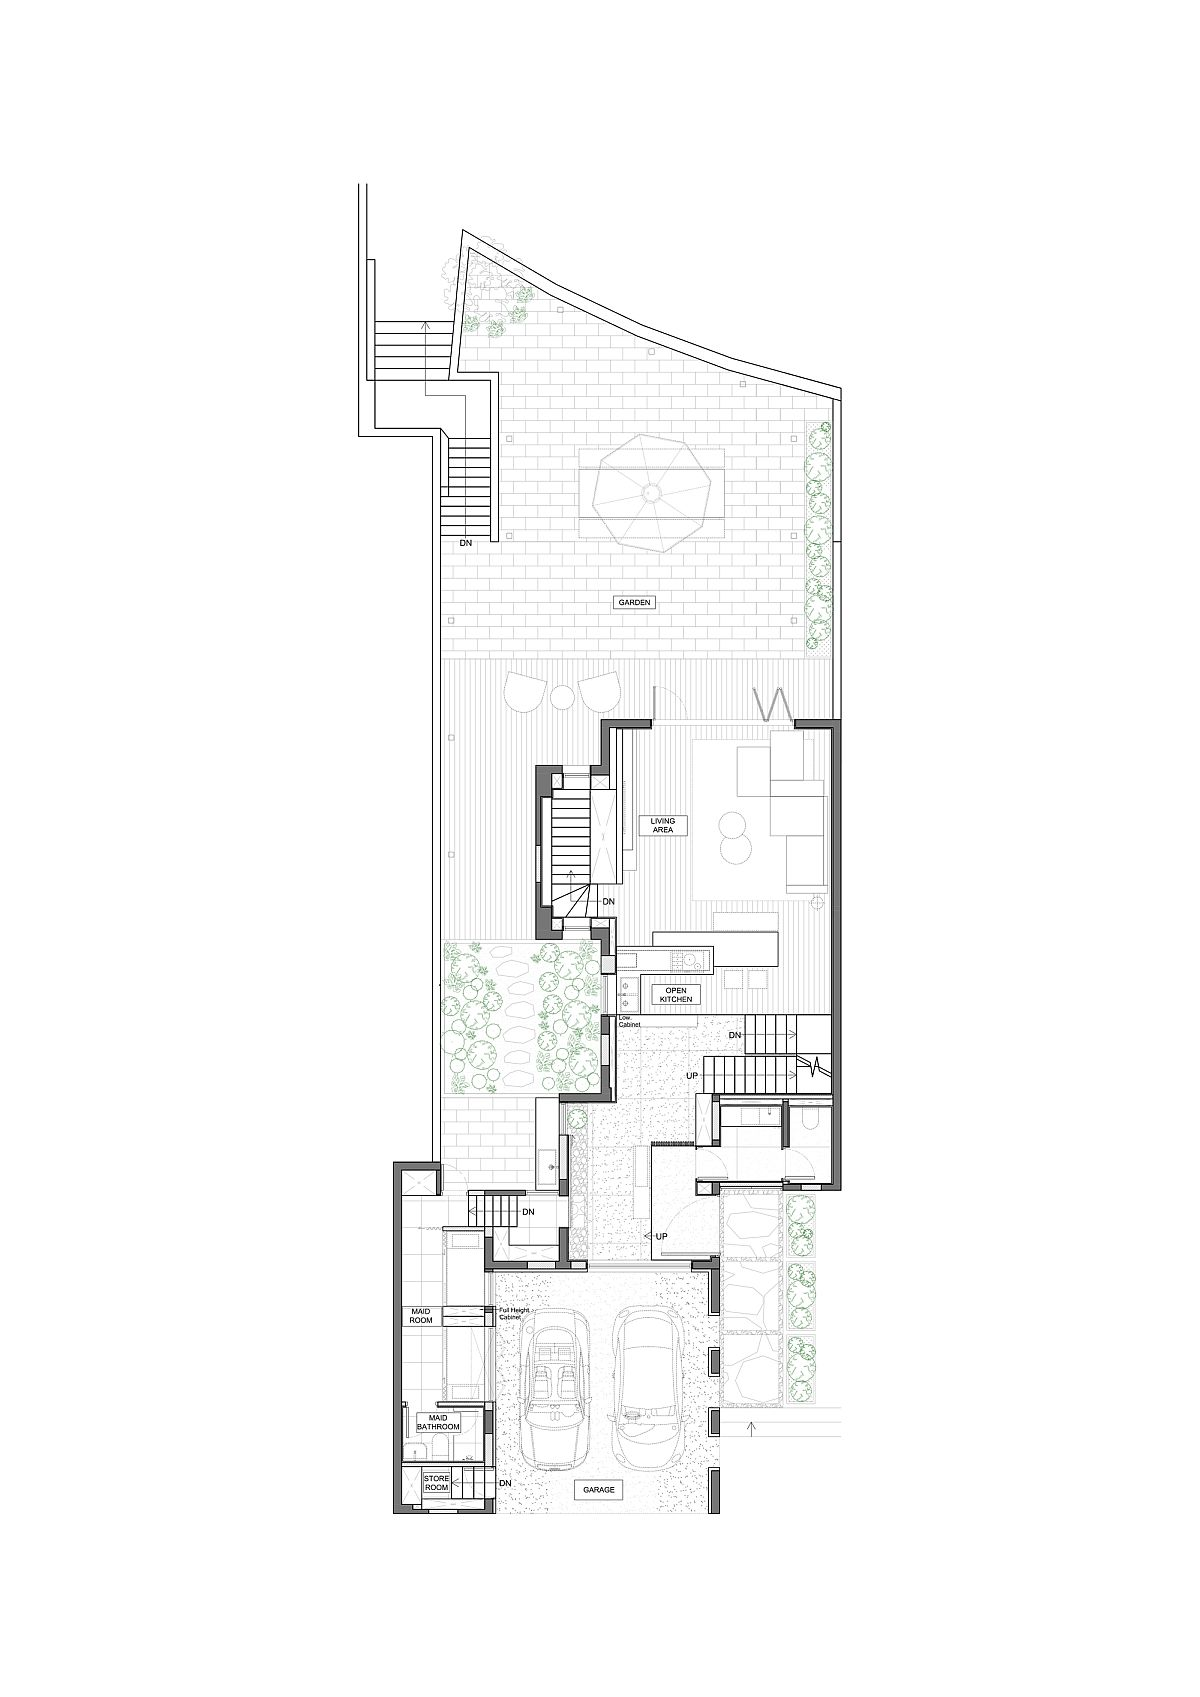 Floor-plan-of-the-lower-level-of-the-House-in-Silverstrand